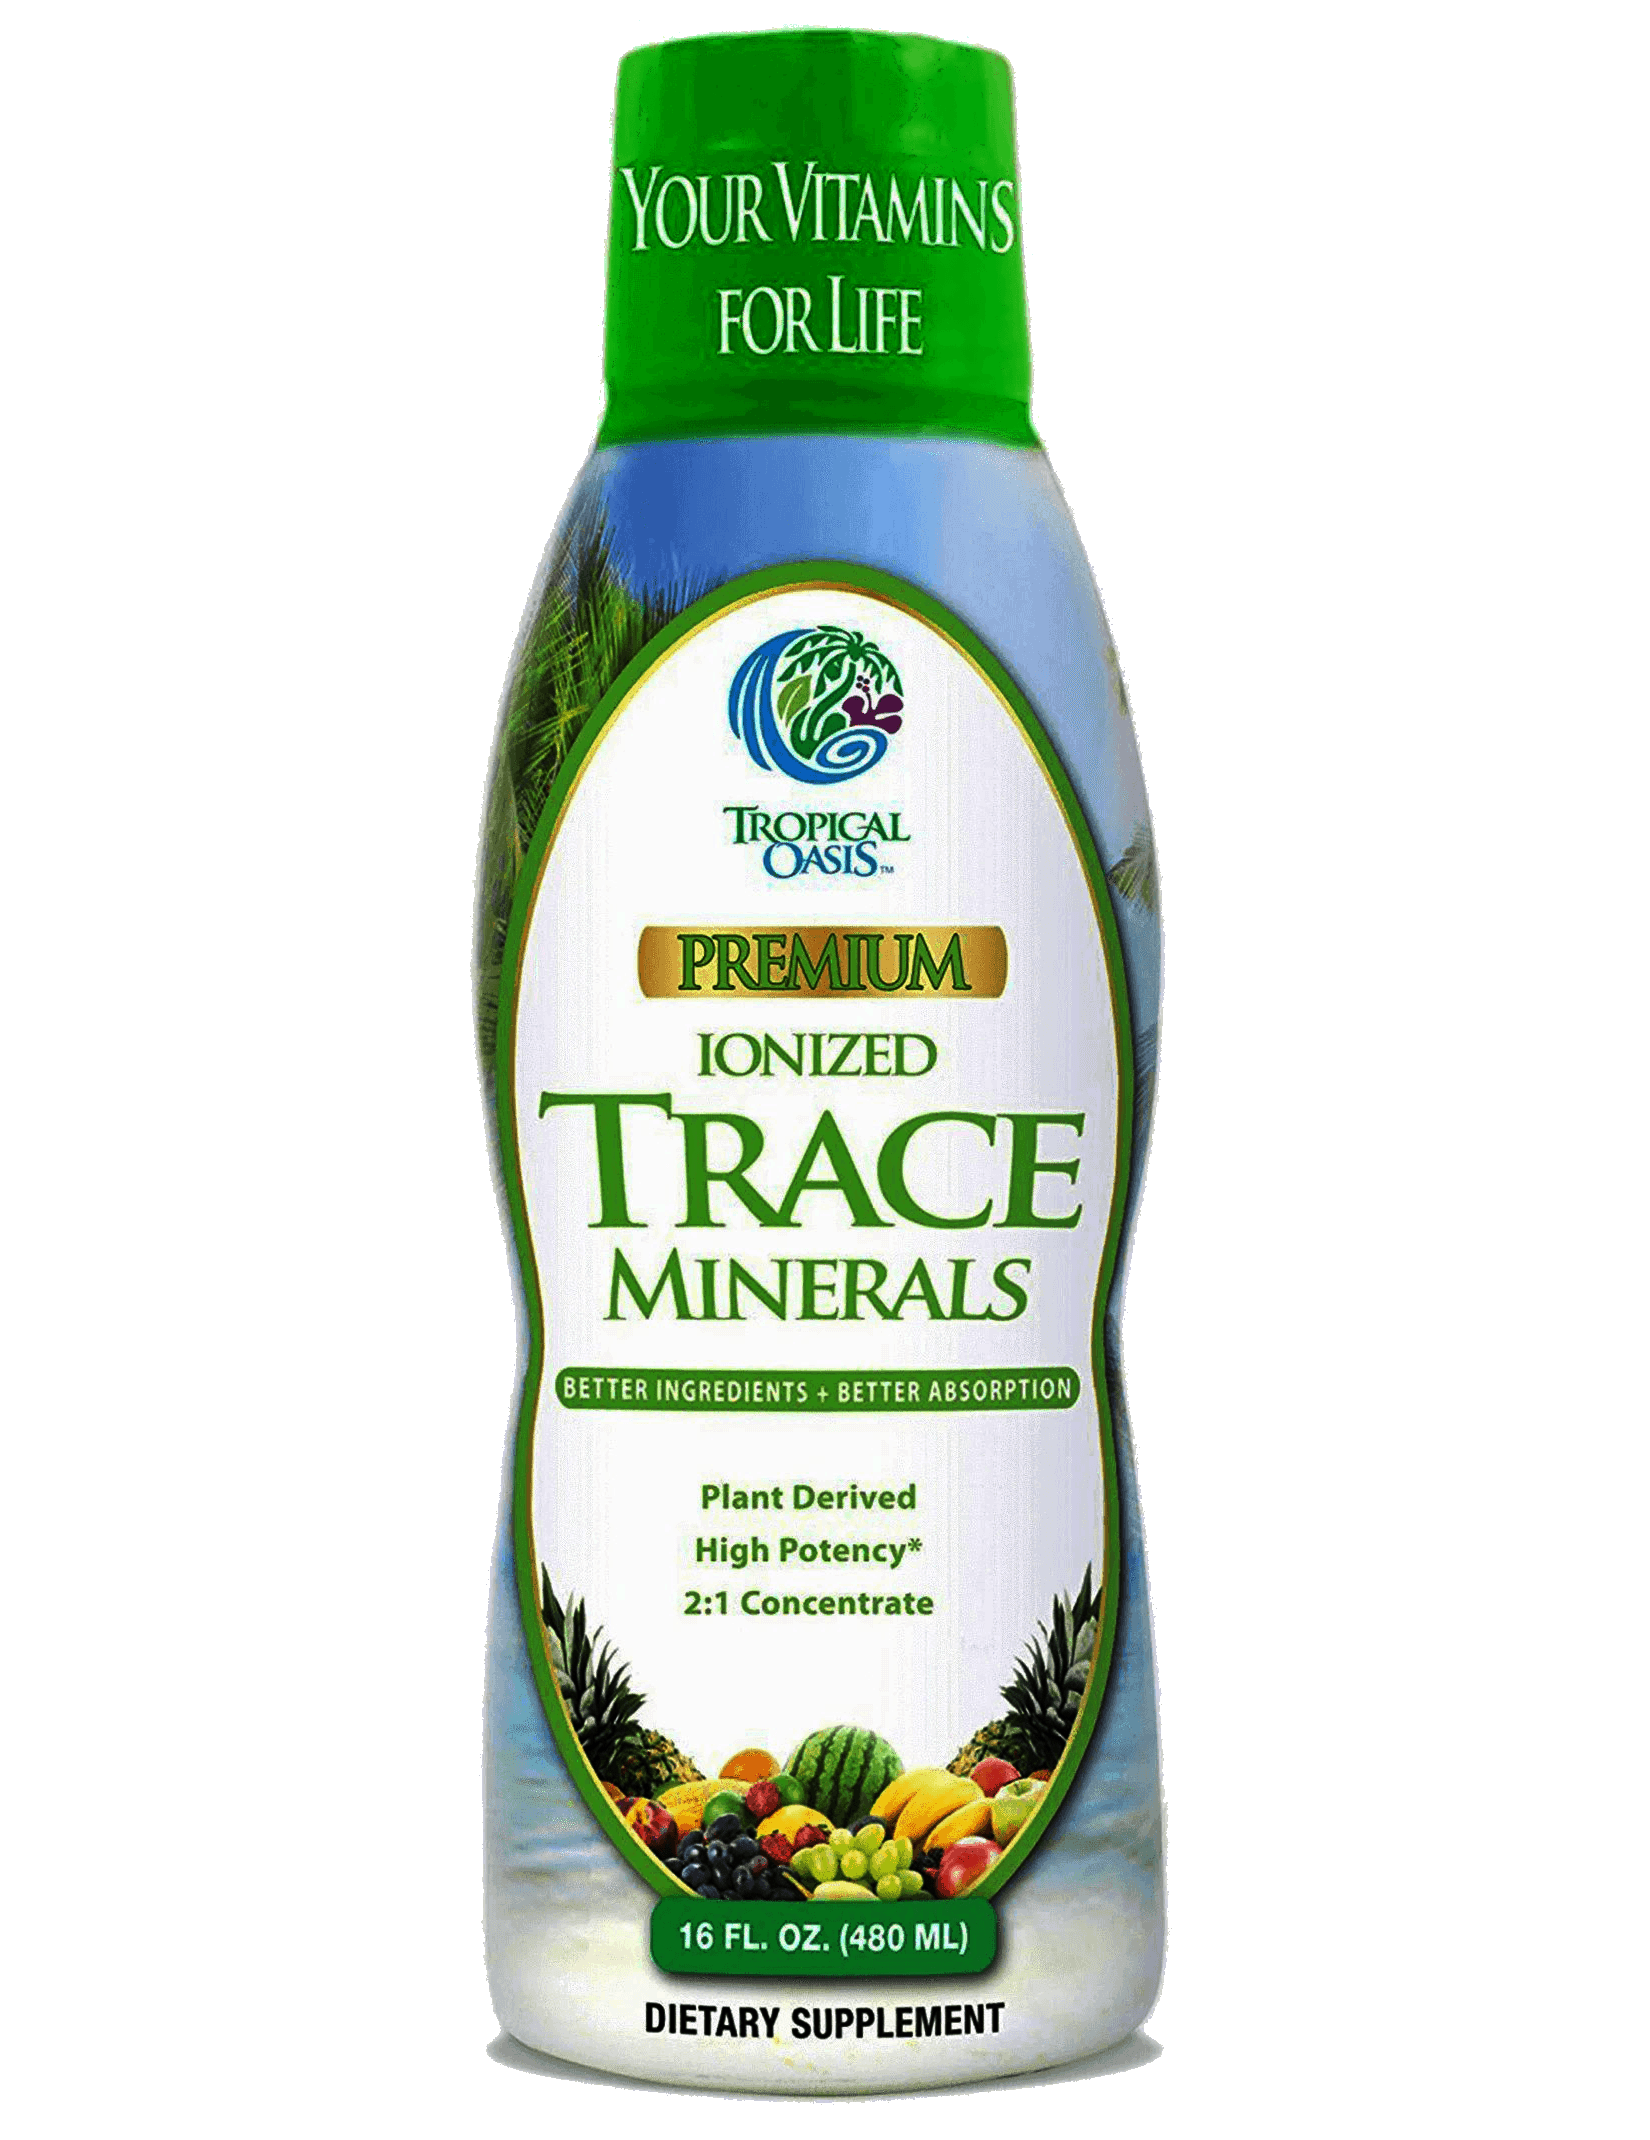 Premium Plant Based Trace Minerals - 74 Natural Organic Ionized Trace Minerals